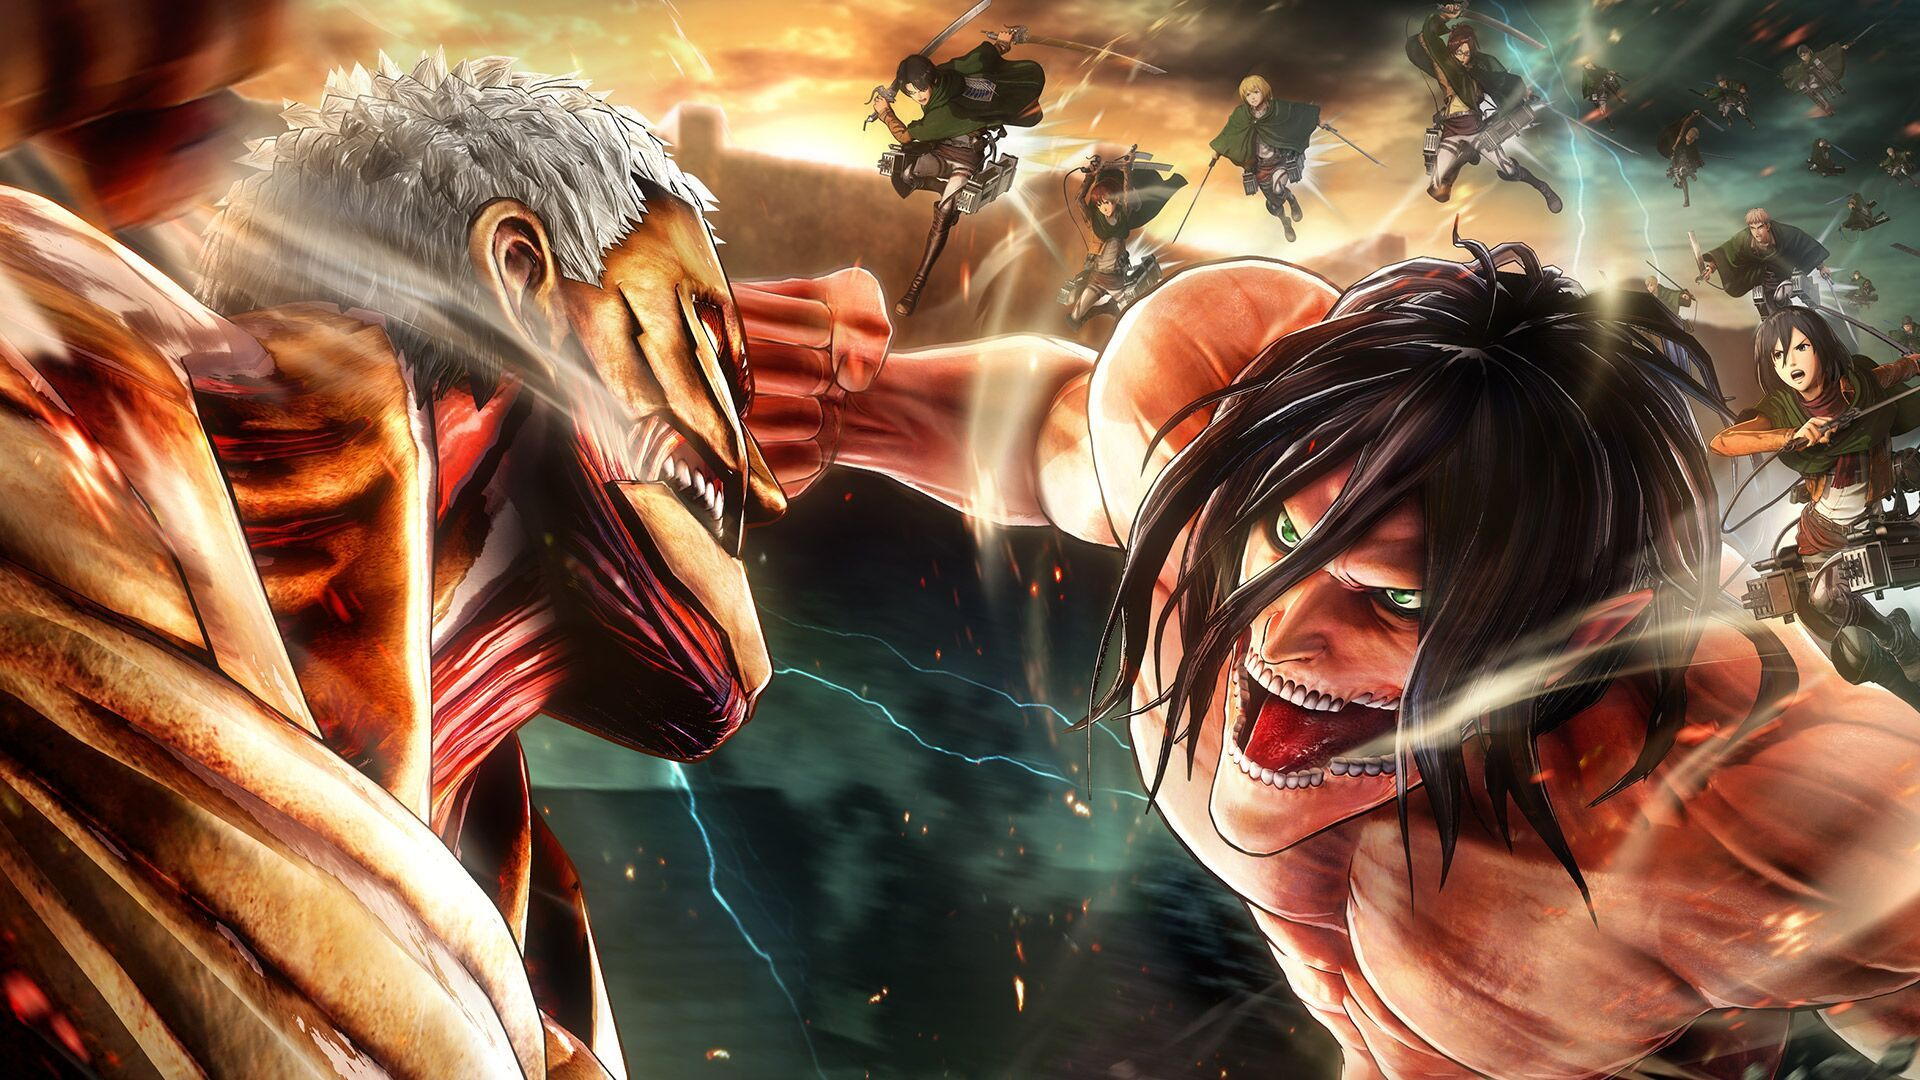 Attack On Titan Chapter 139 Release Date Spoilers The Alliance Members Turns Into Titans Blocktoro